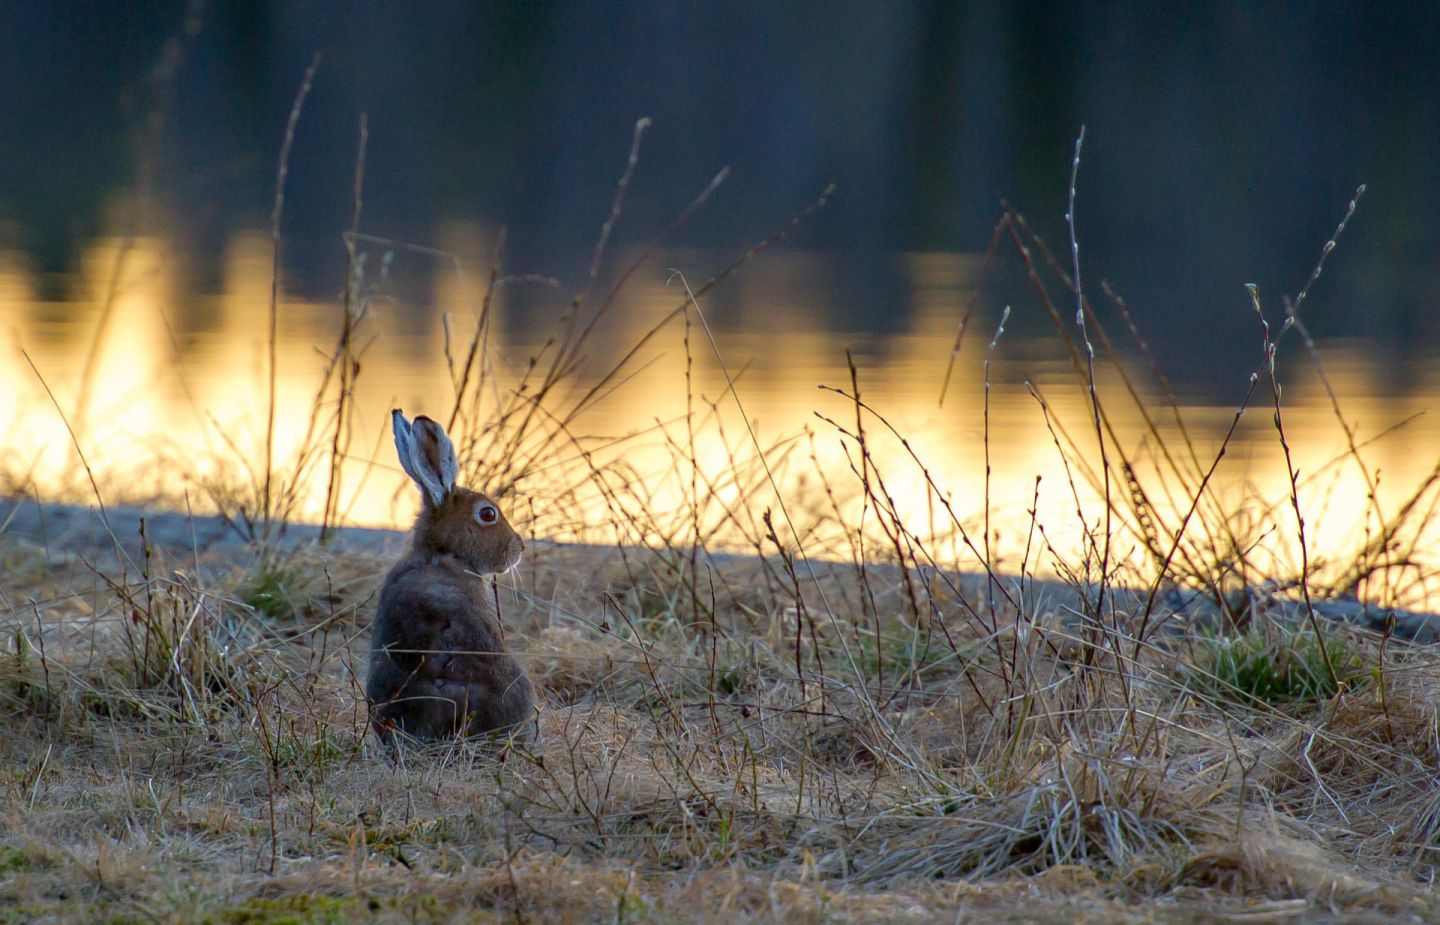 Hares, part of the Arctic wildlife you'll find in Finnish Lapland